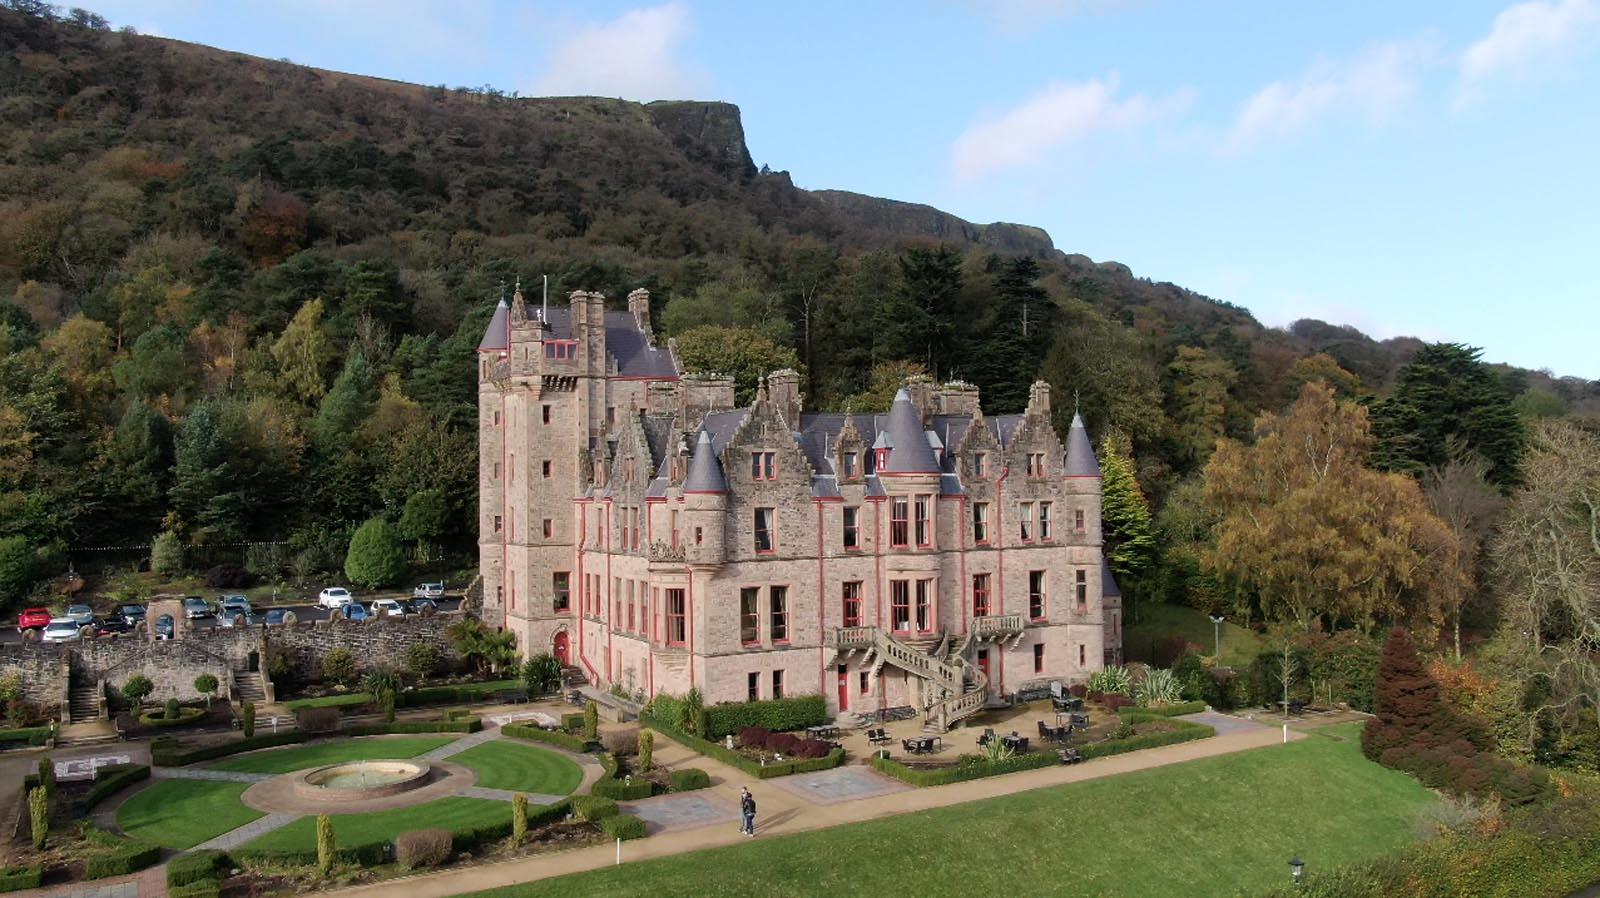 Photo: Commercial, residential, property drone photography and video Dublin, Wicklow, Monaghan, Cavan, Ireland portfolio - screenshot 2 of Belfast Castle video